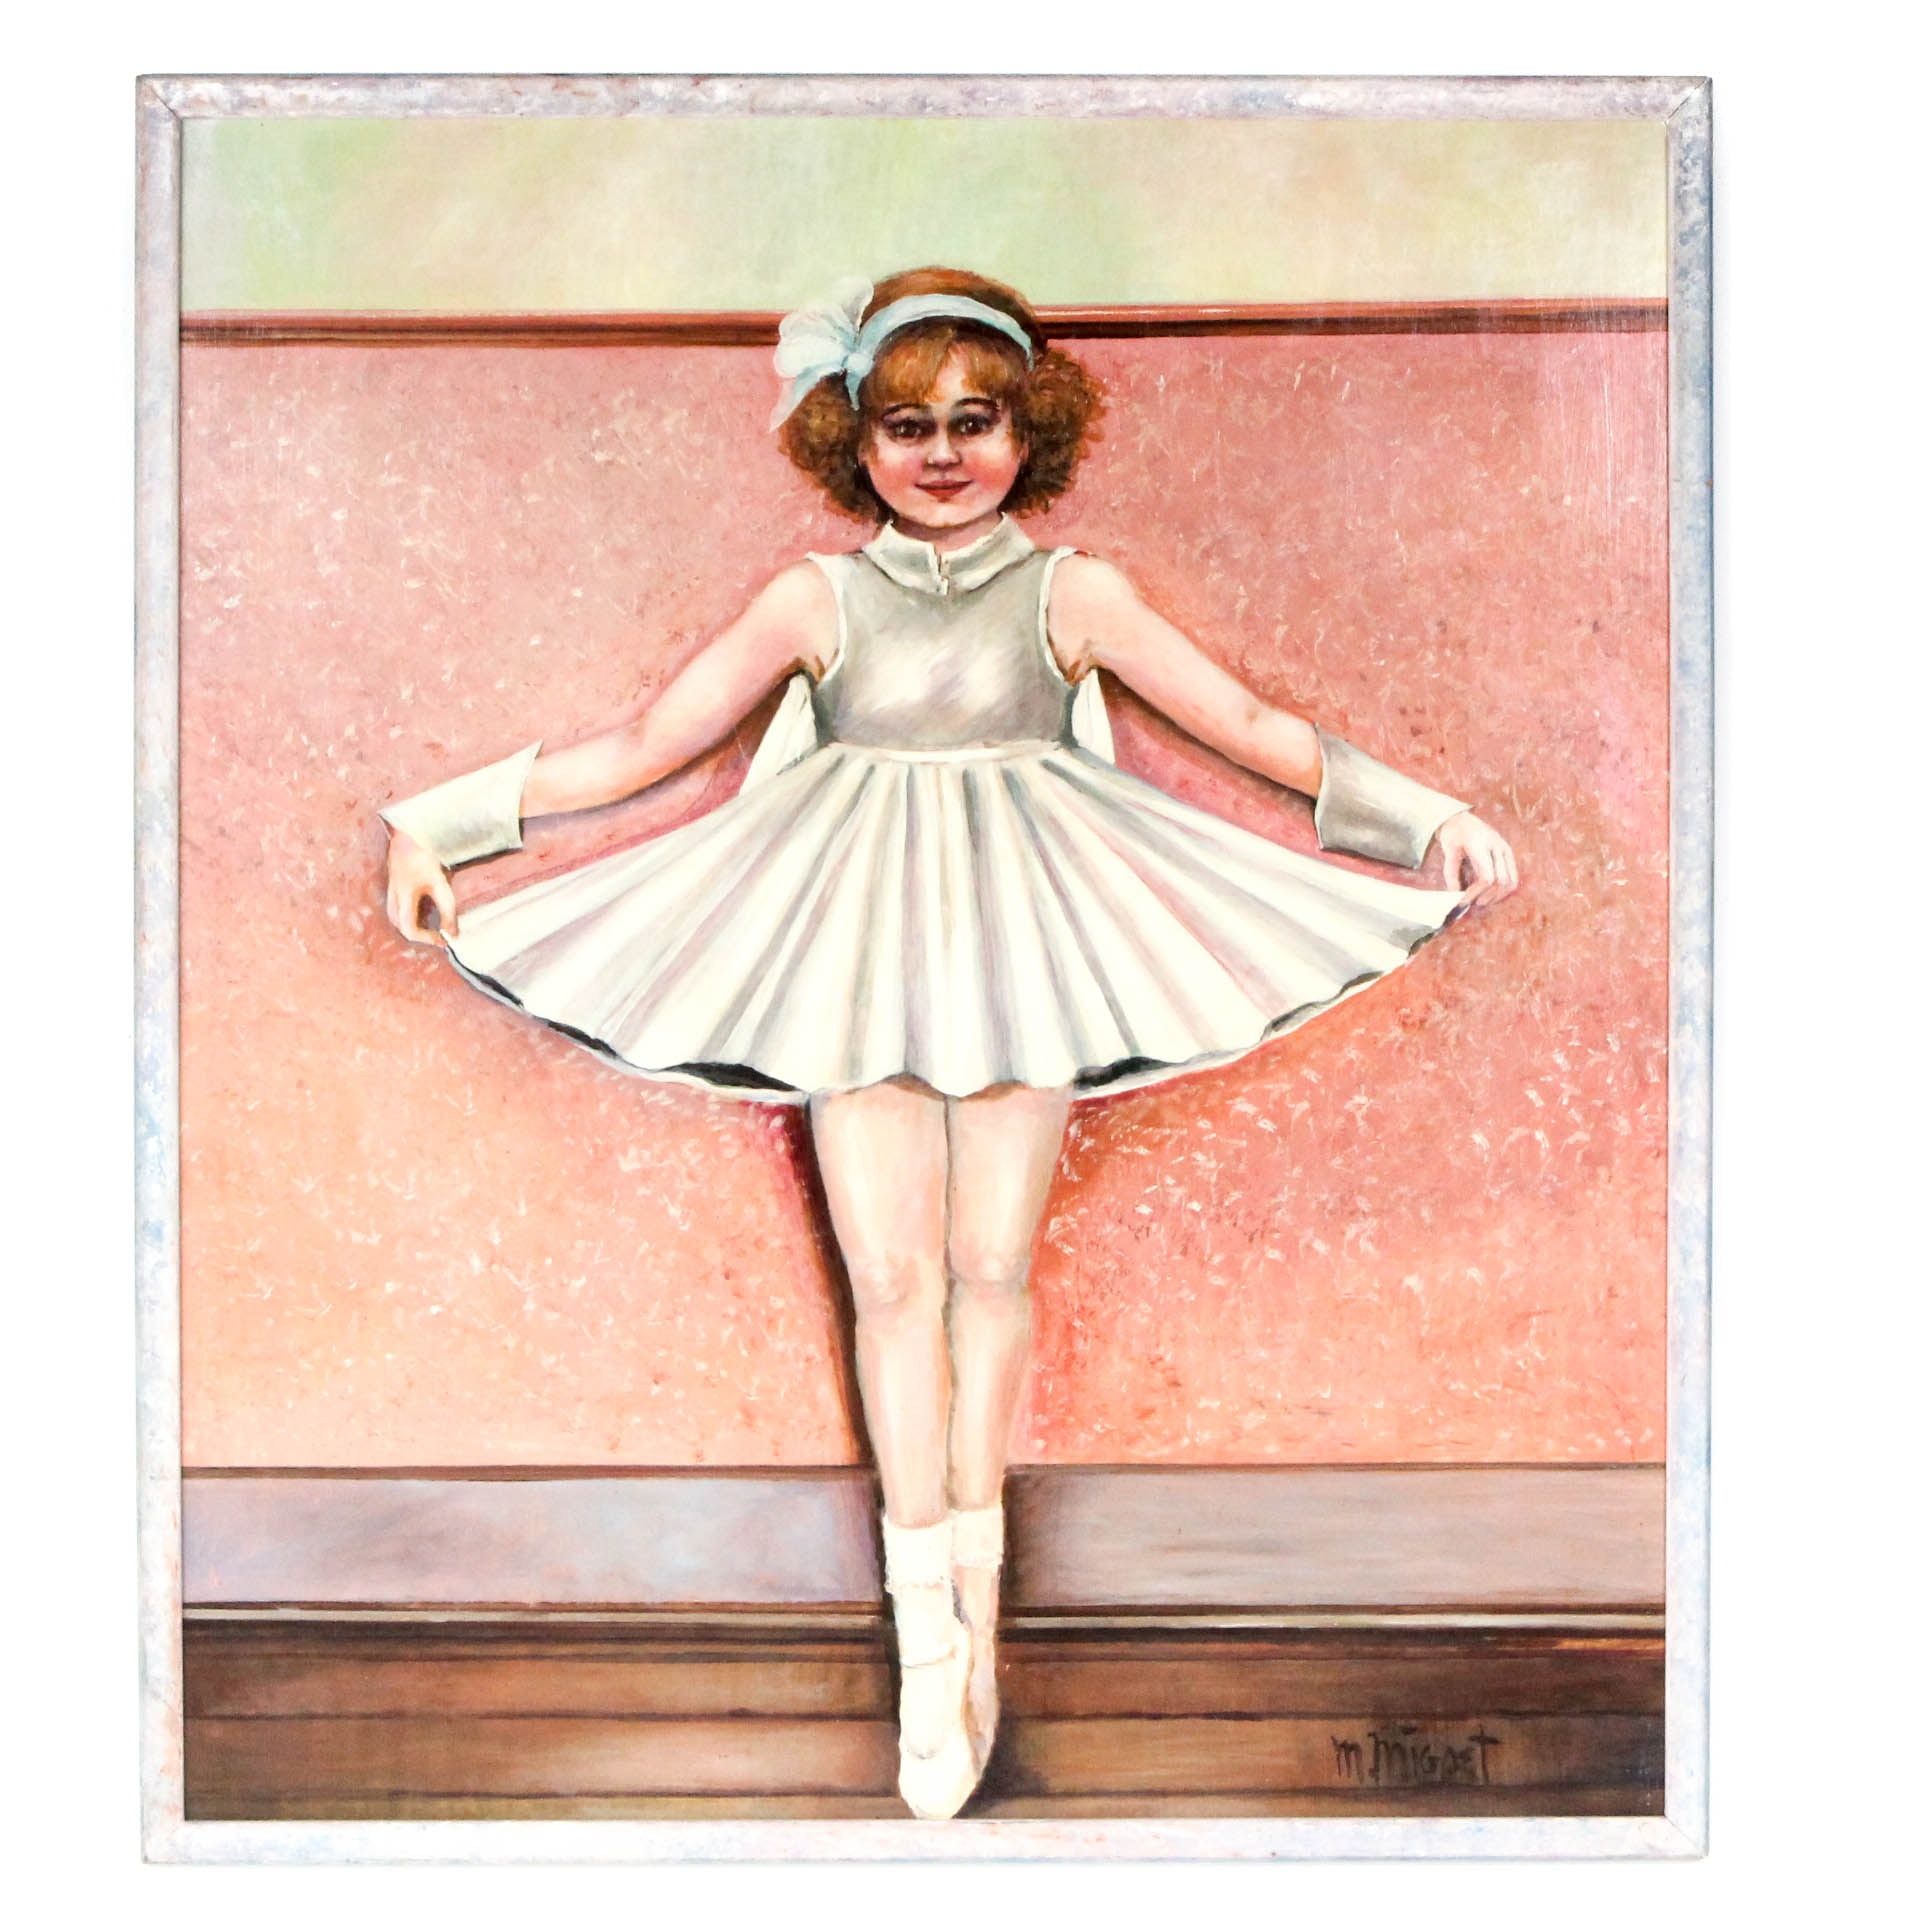 M. Migoet Oil Painting of Ballerina